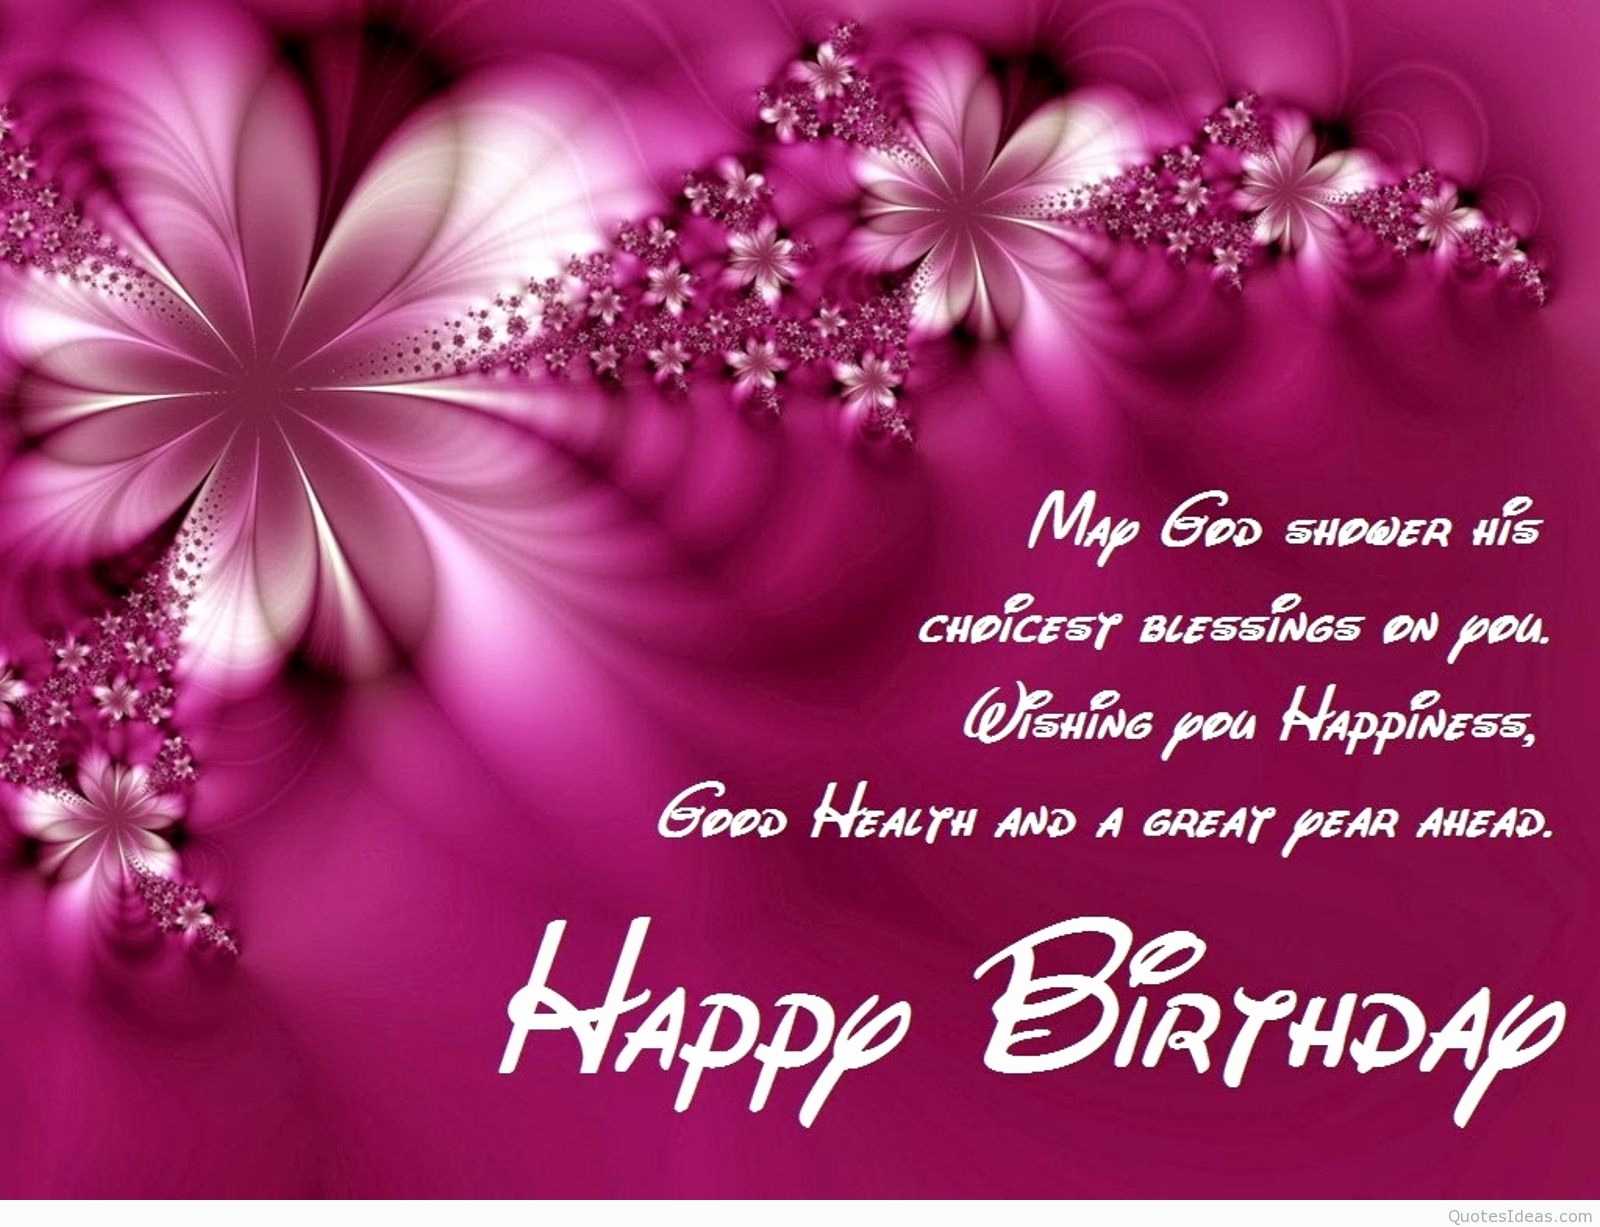 happy birthday wallpaper with wishes ; happy-birthday-wishes-for-friend-wallpaper-unique-happy-birthday-quotes-images-happy-birthday-wallpapers-of-happy-birthday-wishes-for-friend-wallpaper